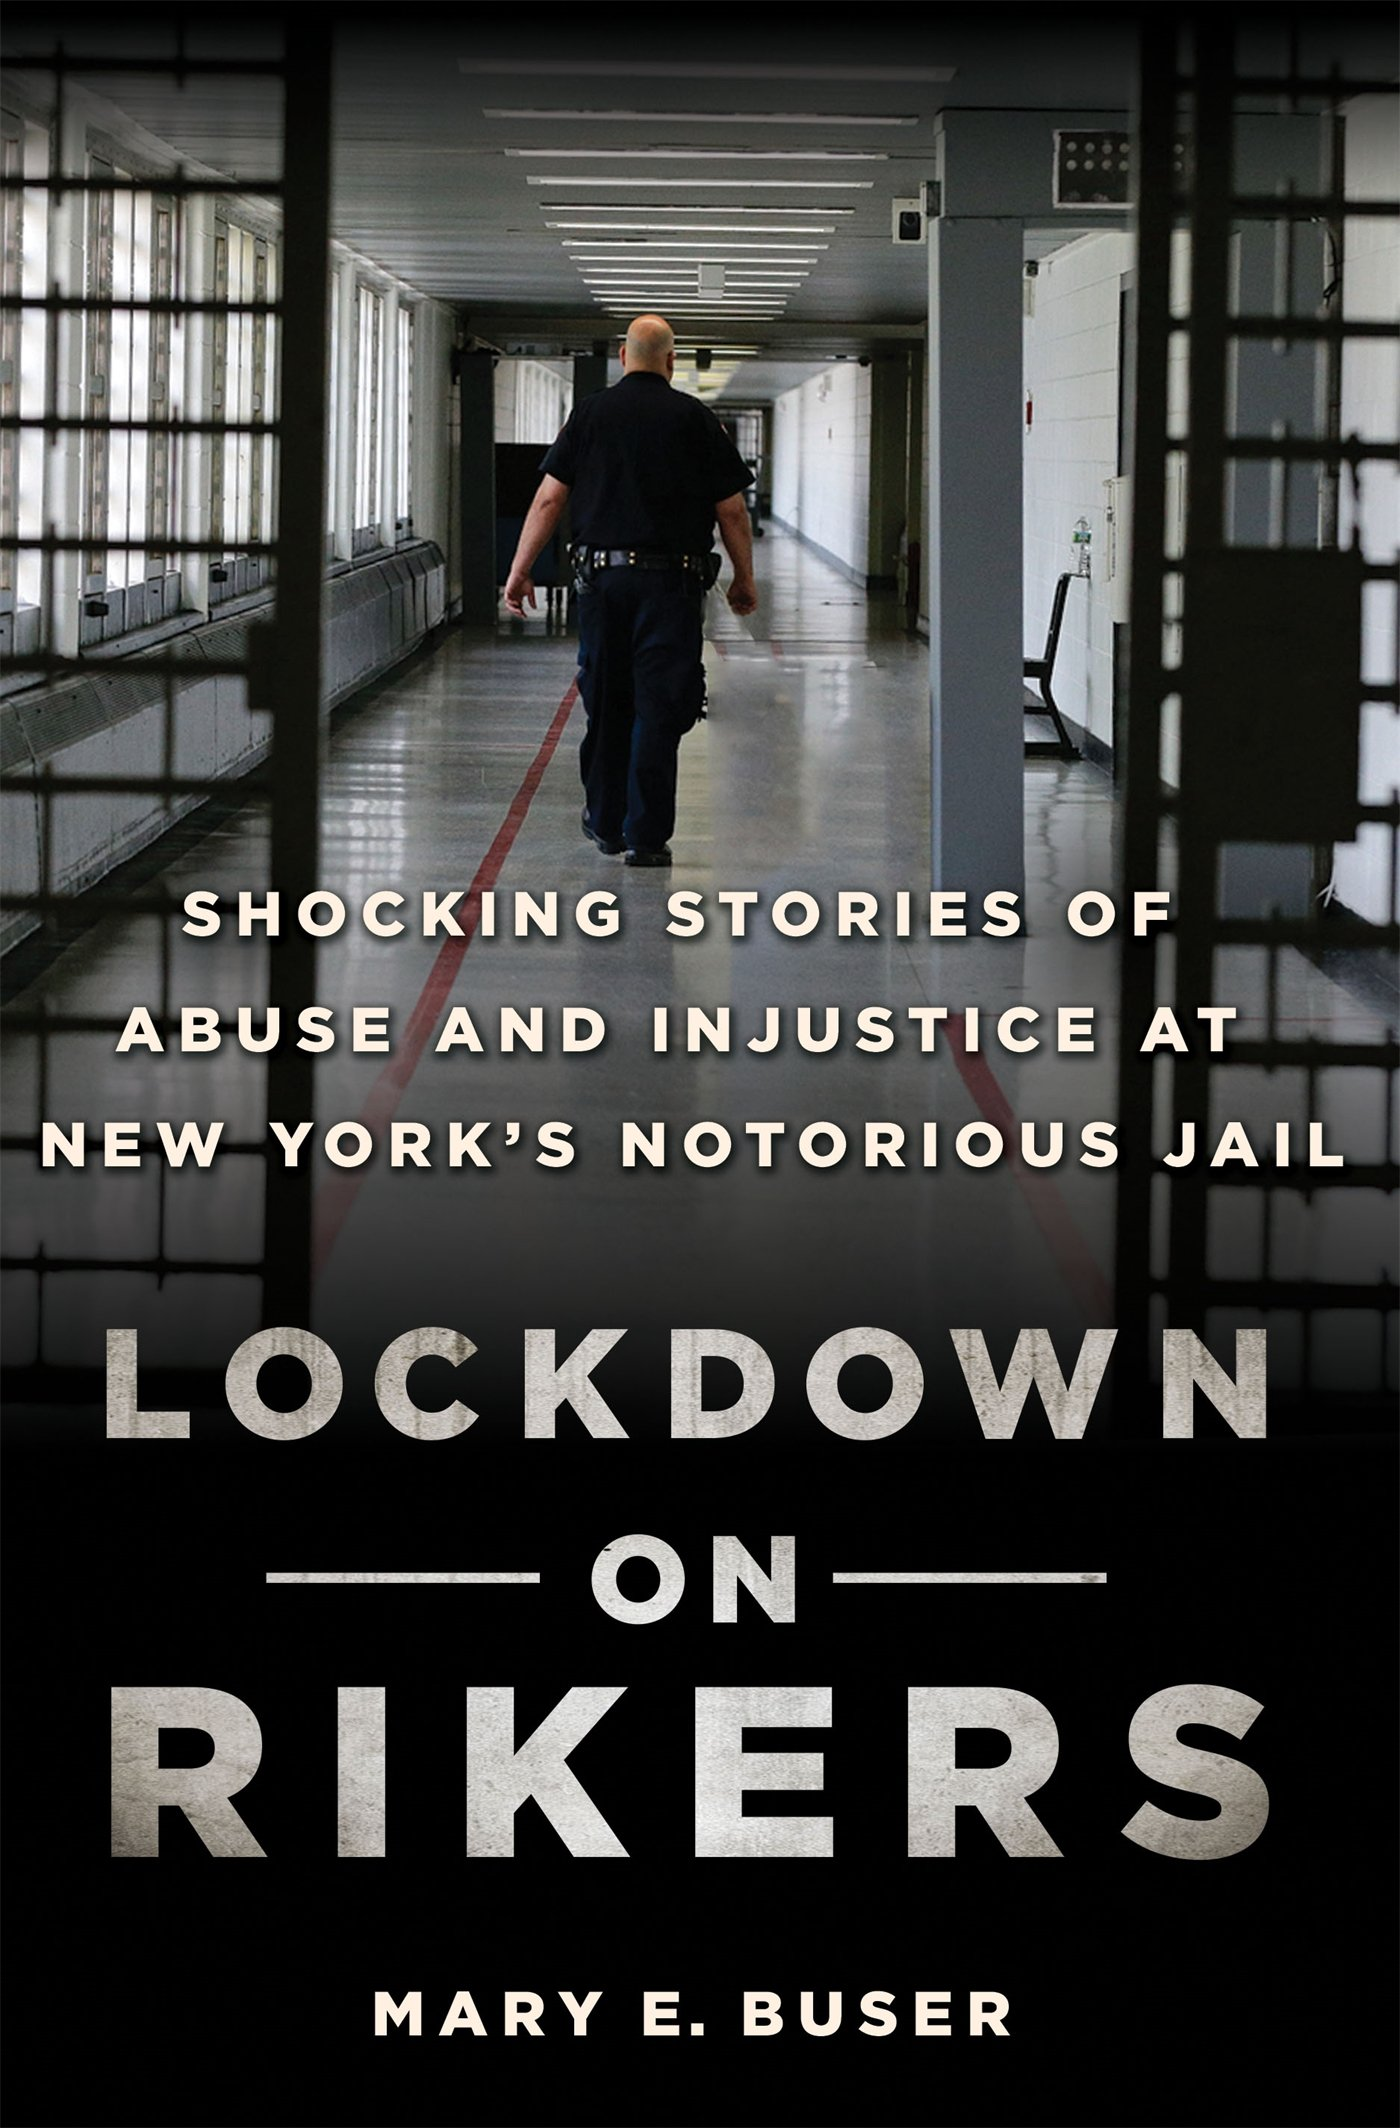 Lockdown on Rikers: Shocking Stories of Abuse and Injustice